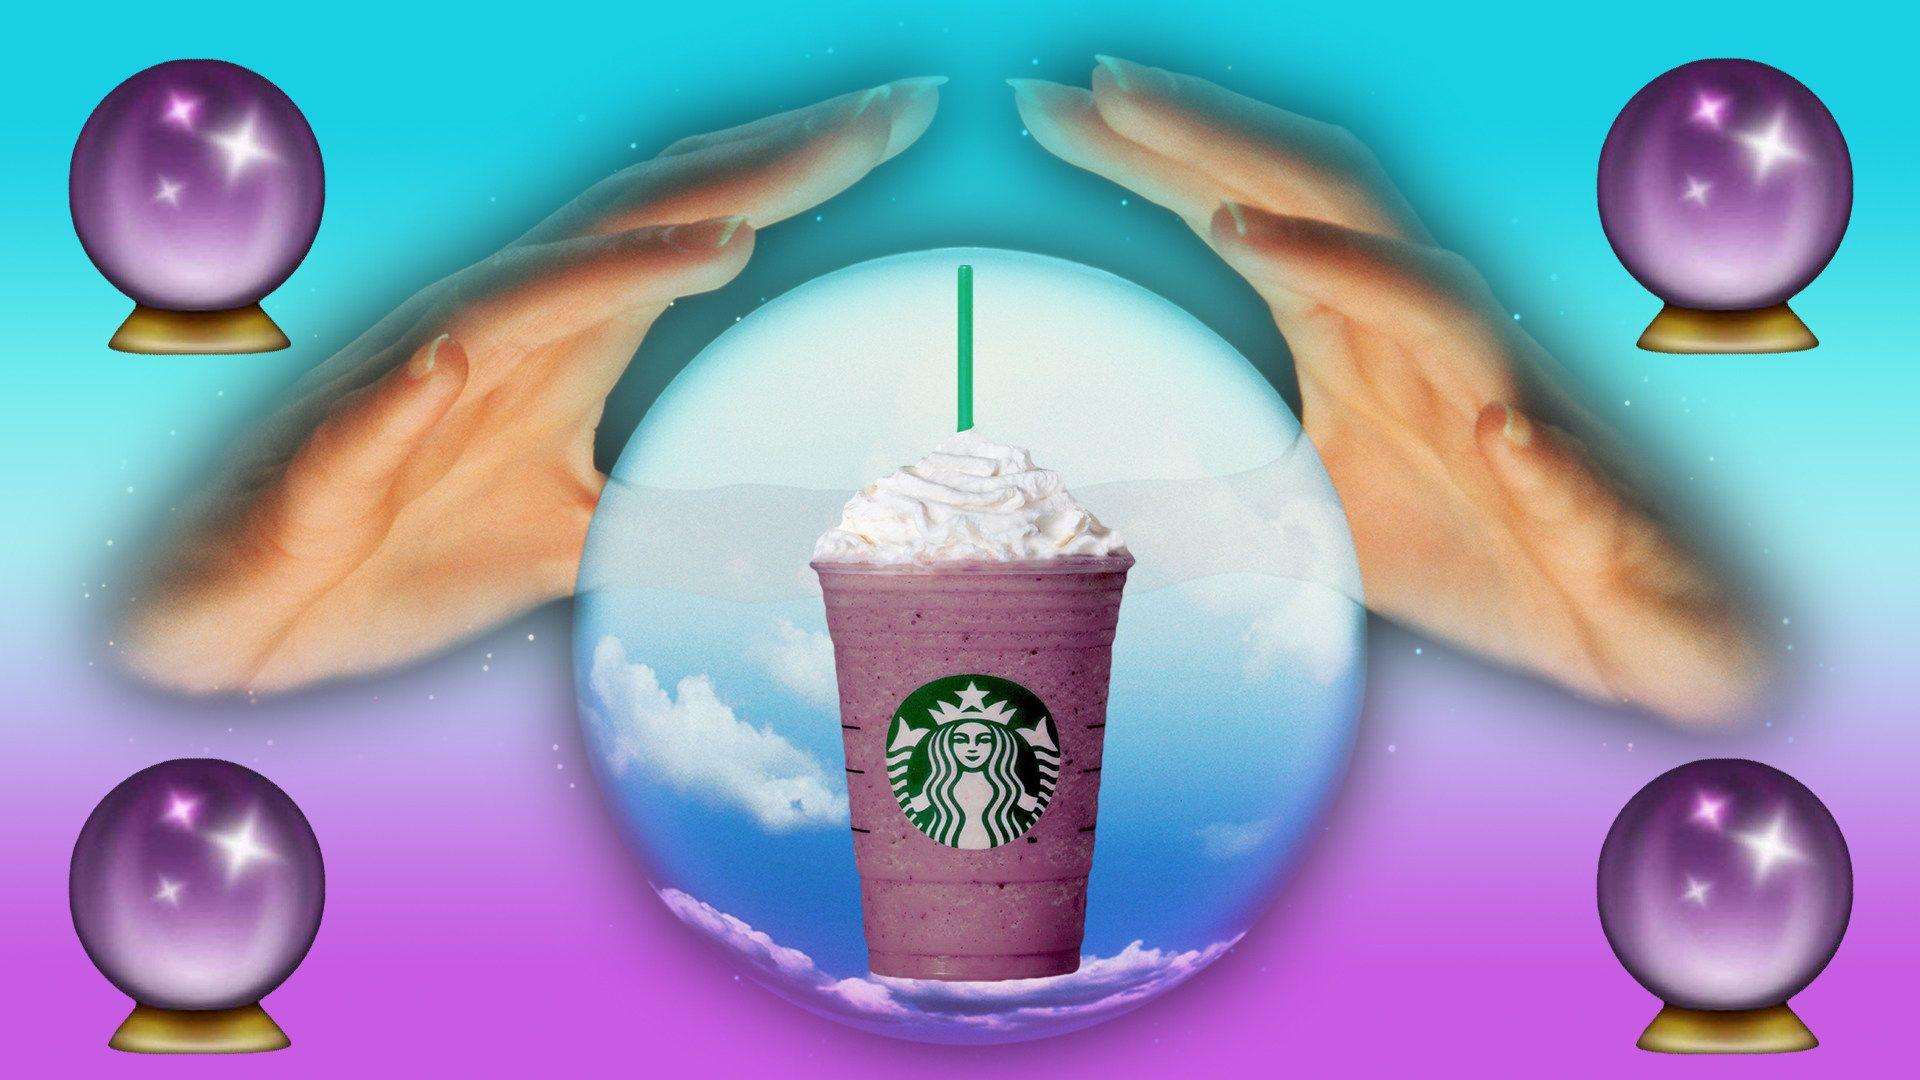 Starbucks Is Conjuring Up a Magical New Frappuccino